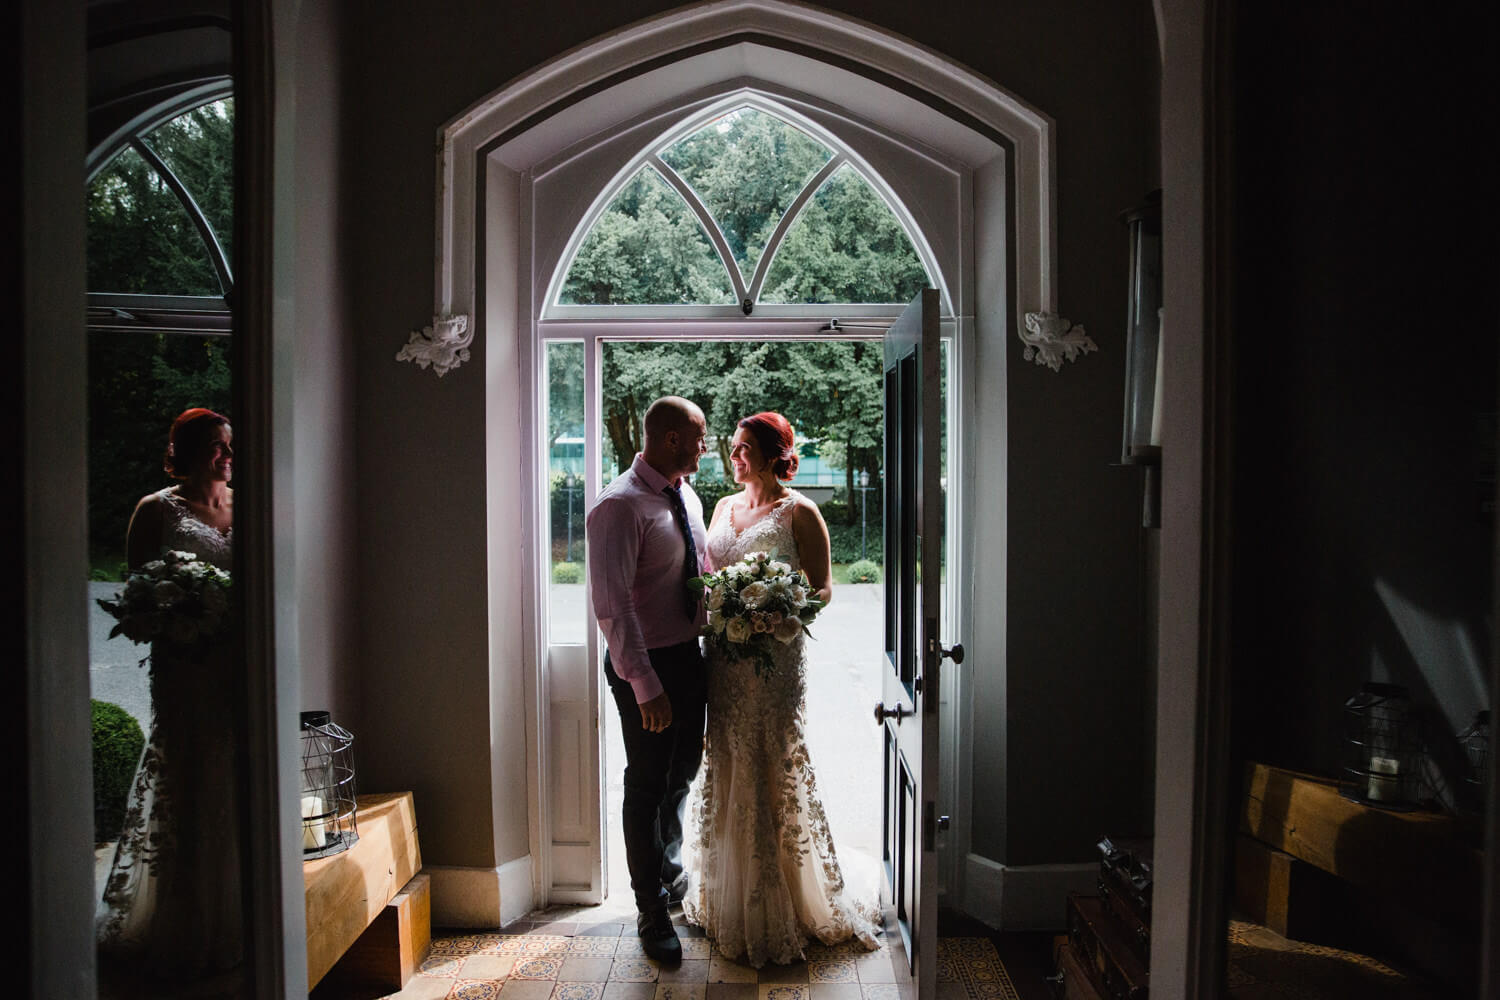 low light exposure photograph of newlywed couple stood in doorway holding bouquet of flowers